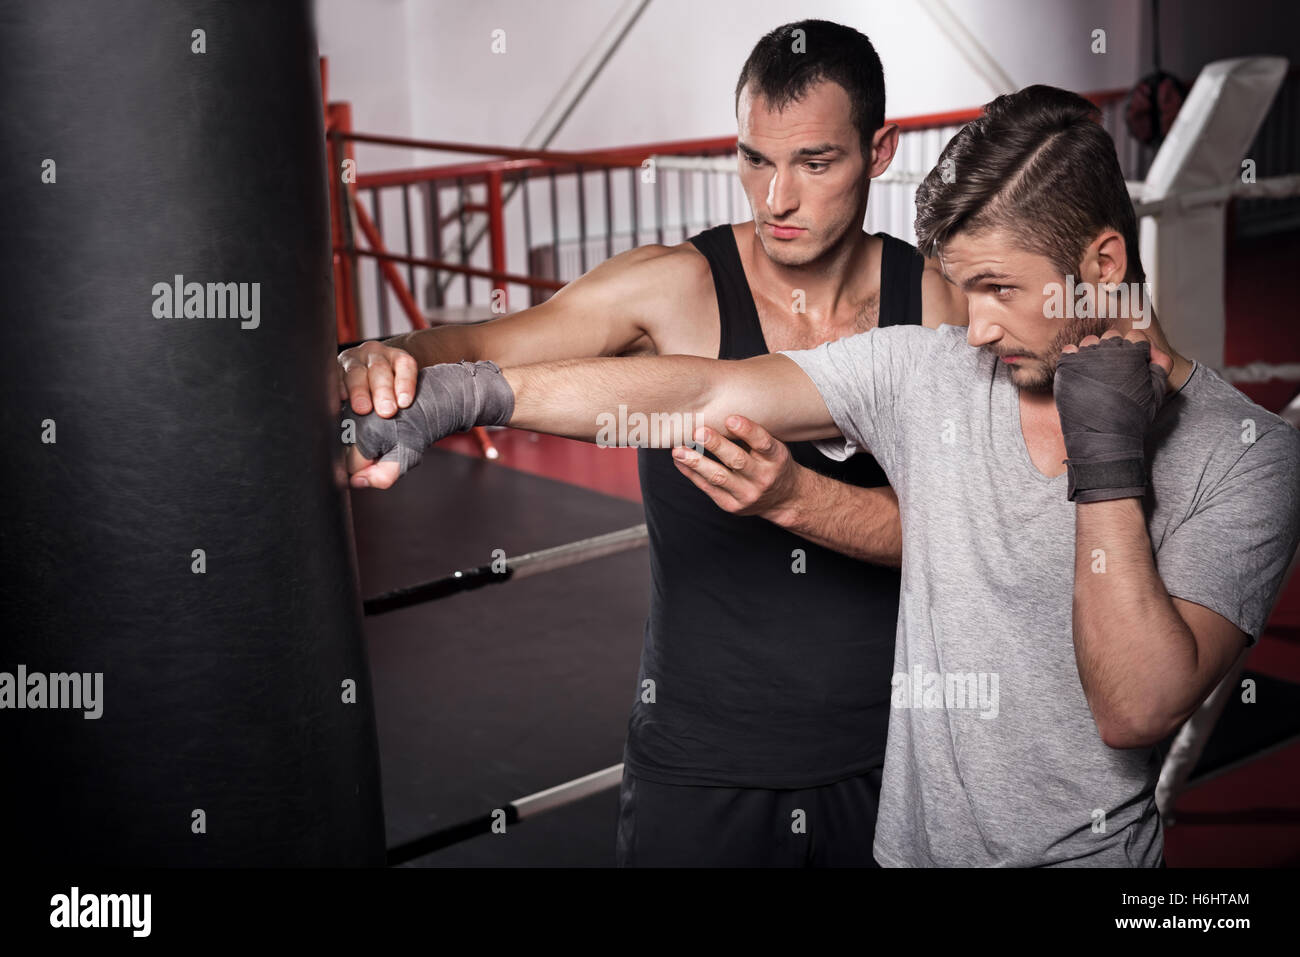 Trainer teaches how to punch a bag Stock Photo